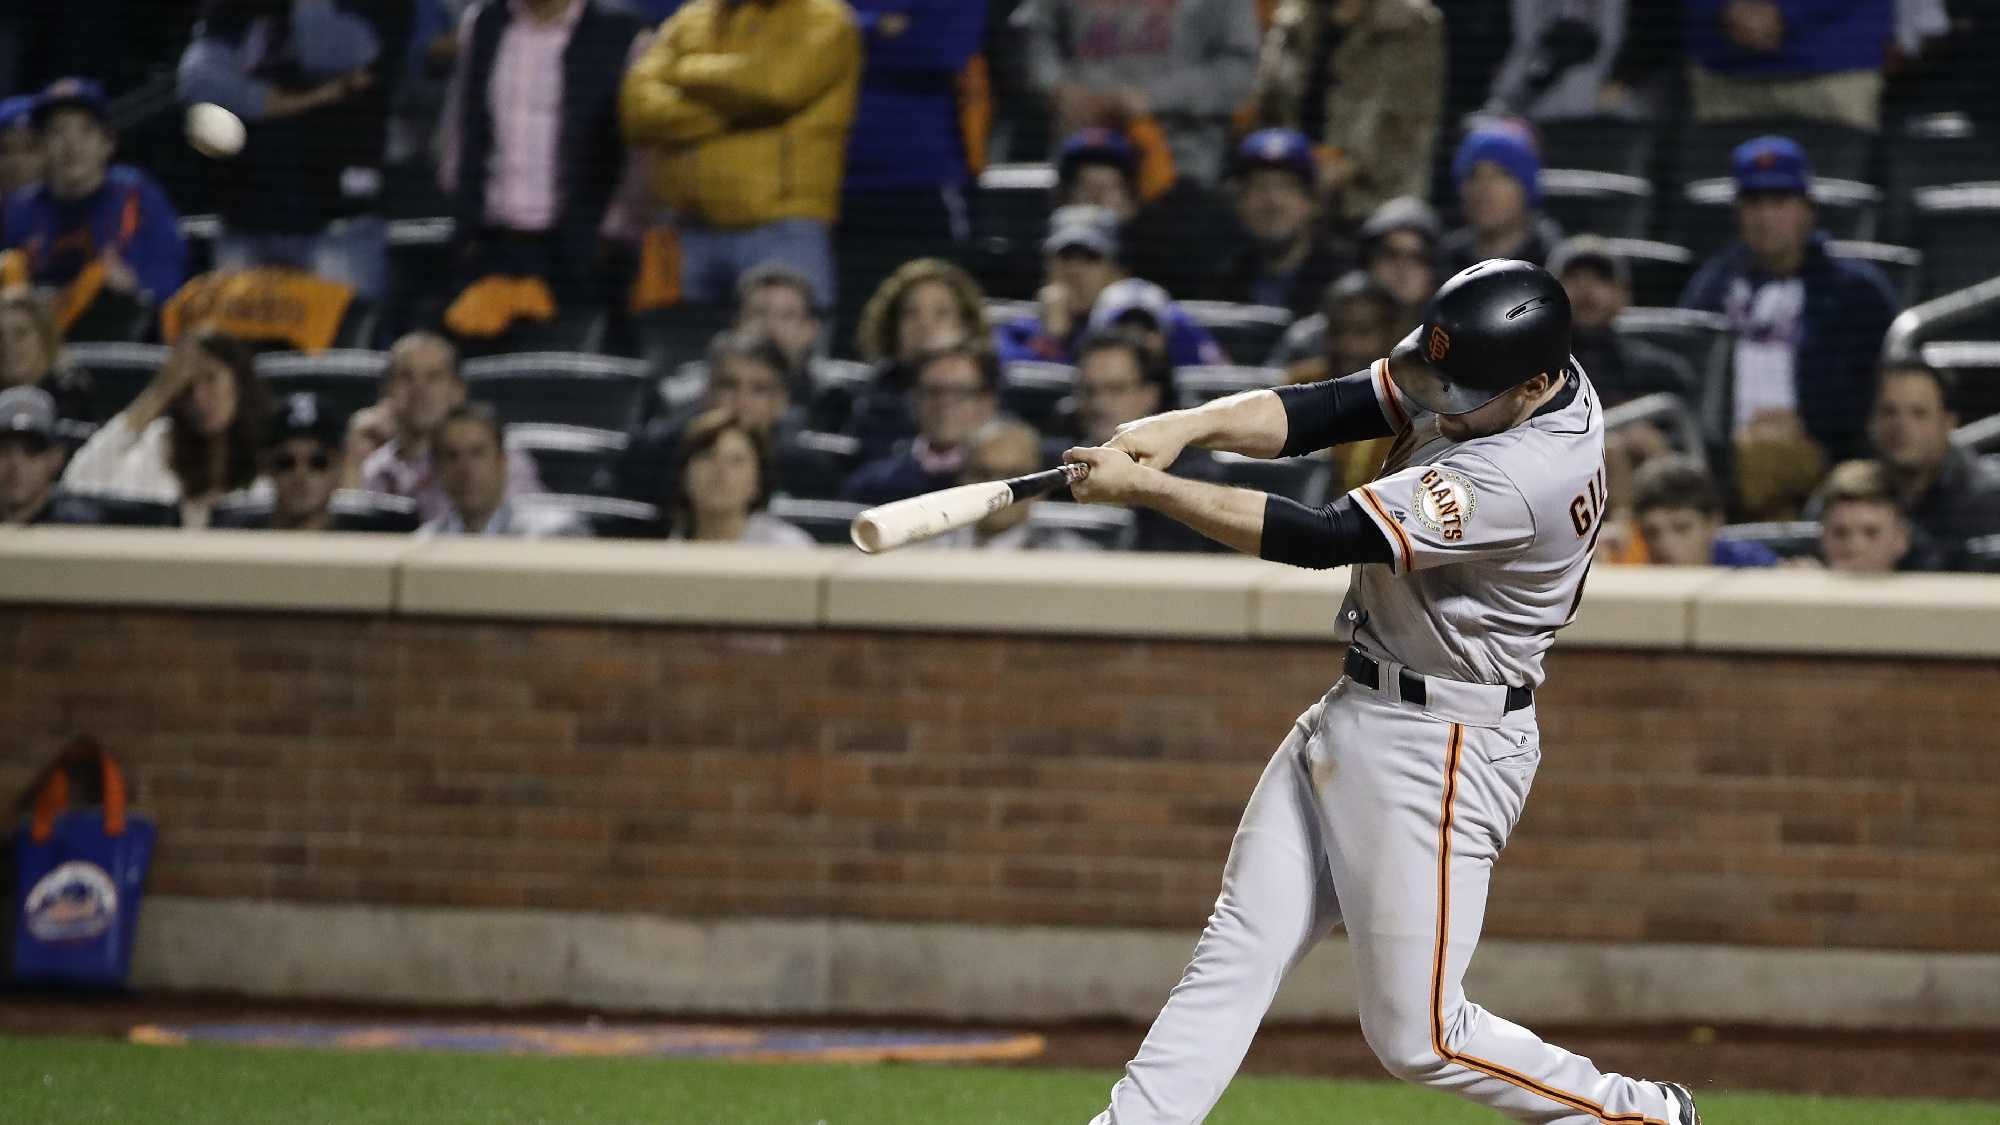 San Francisco Giants' Conor Gillaspie connects for a three-run home run against the San Francisco Giants during the ninth inning of the National League wild-card baseball game.